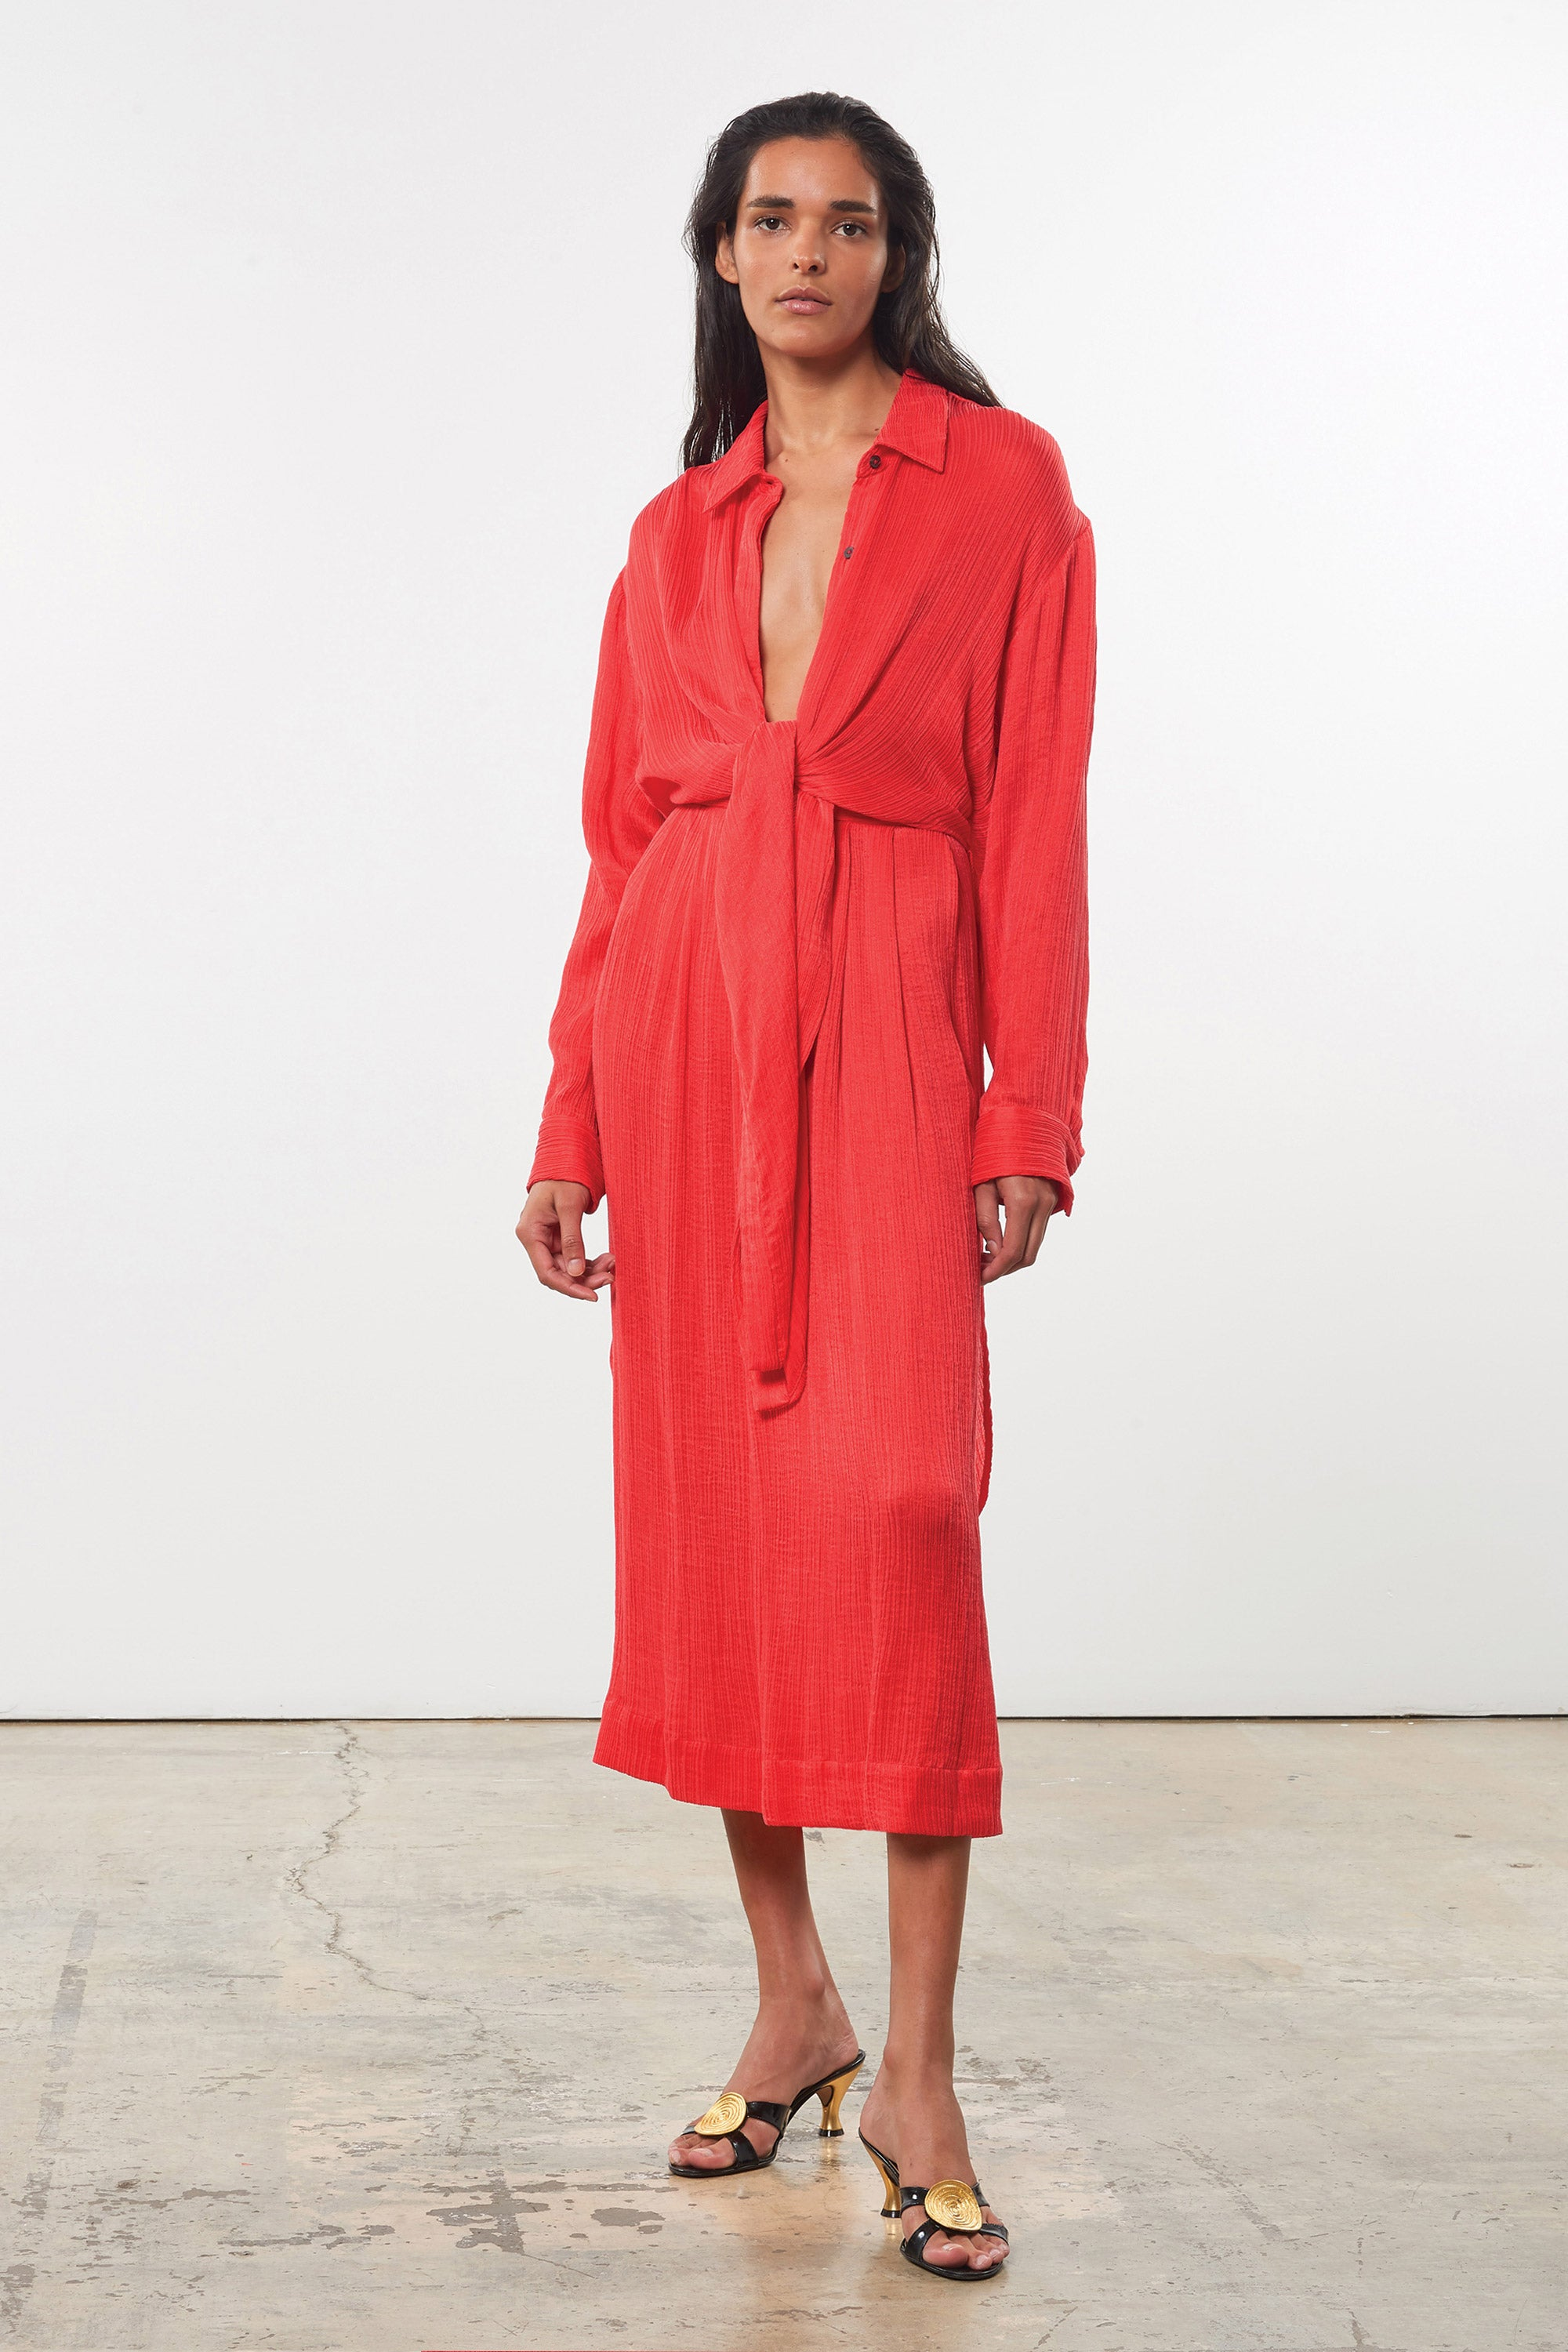 Mara Hoffman Red Agata Dress in Tencel Lyocell (front)